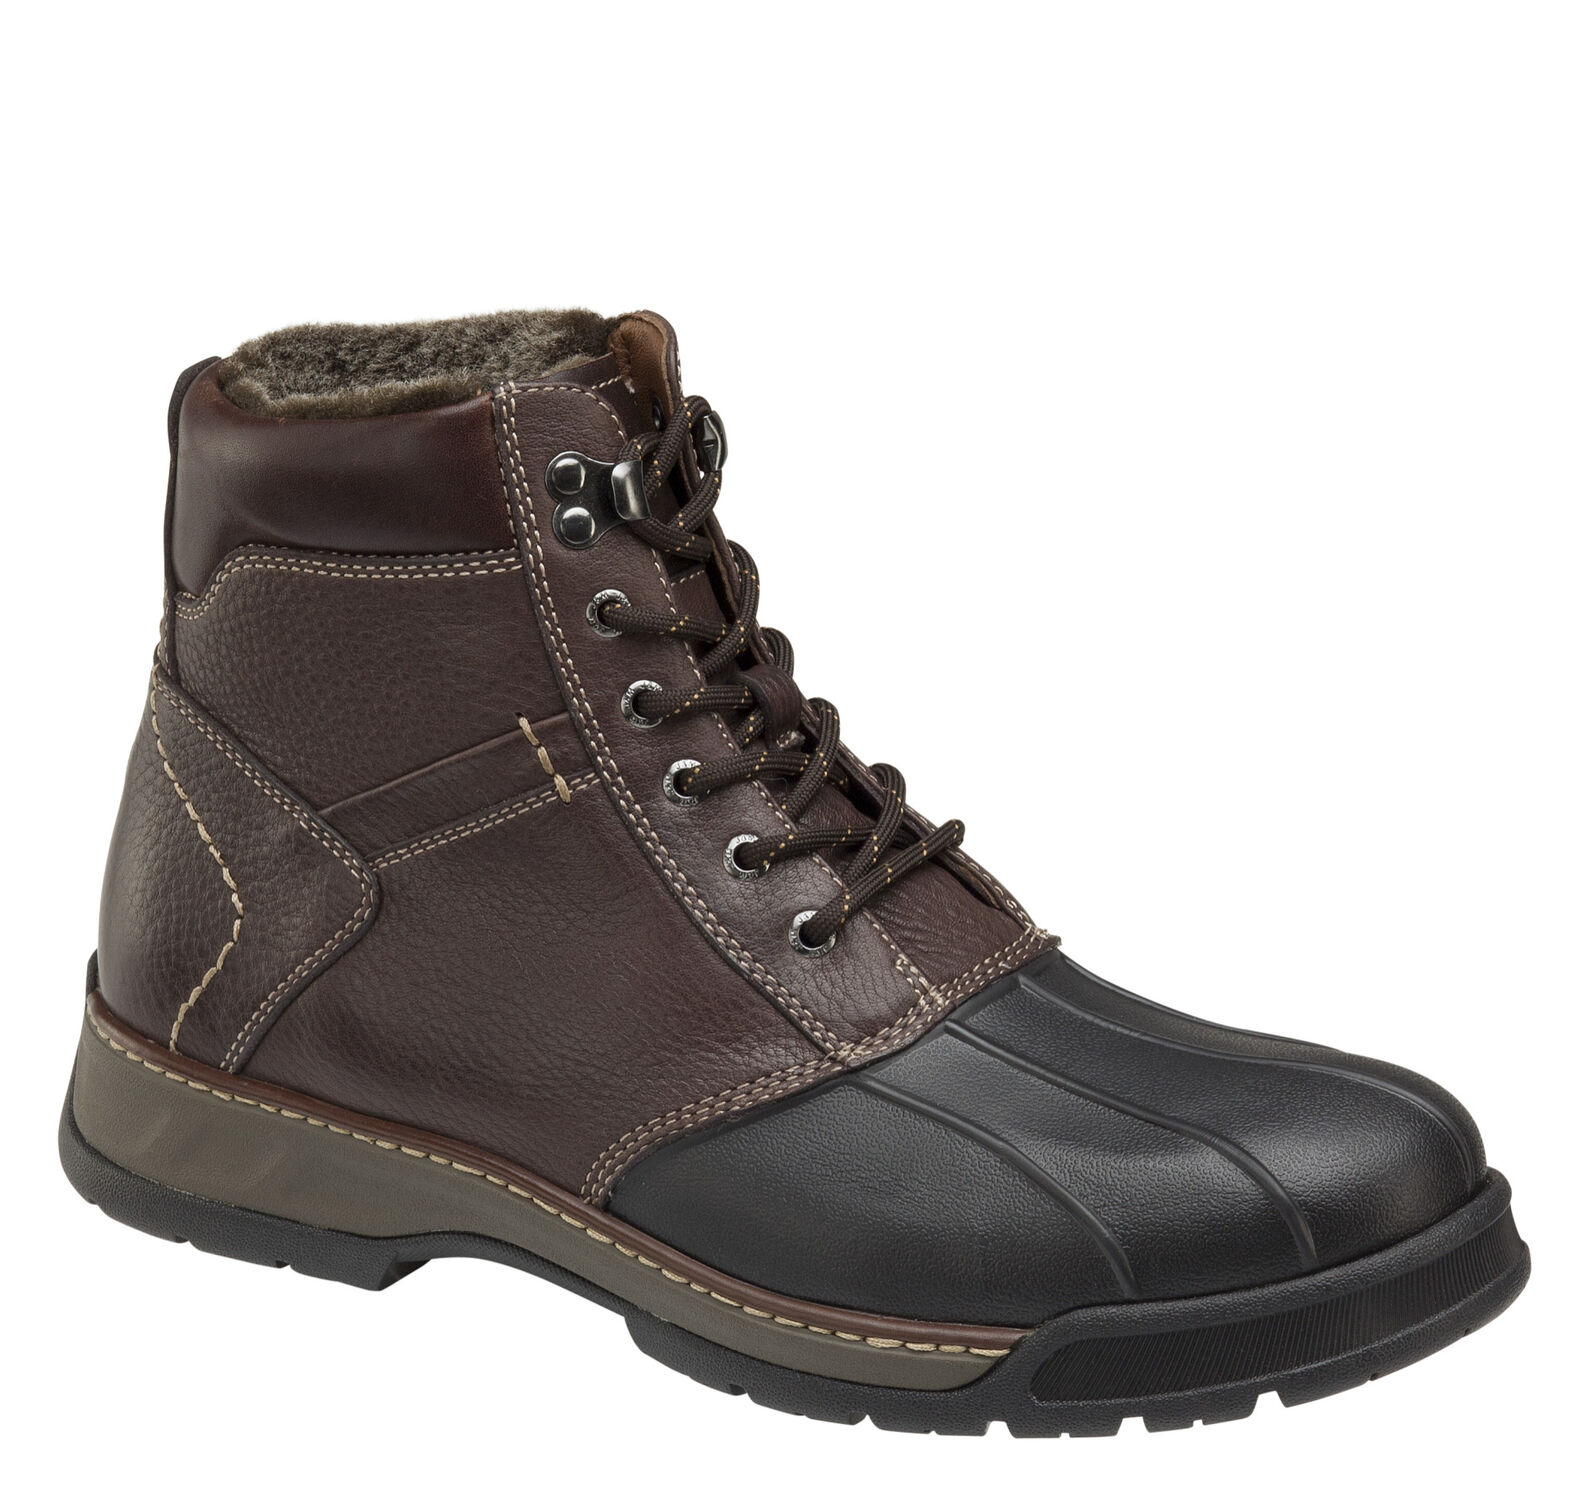 Thompson Shearling Duck Boot Johnston Murphy D Island Shoes Hikers Boots Mens Fashionable Brown